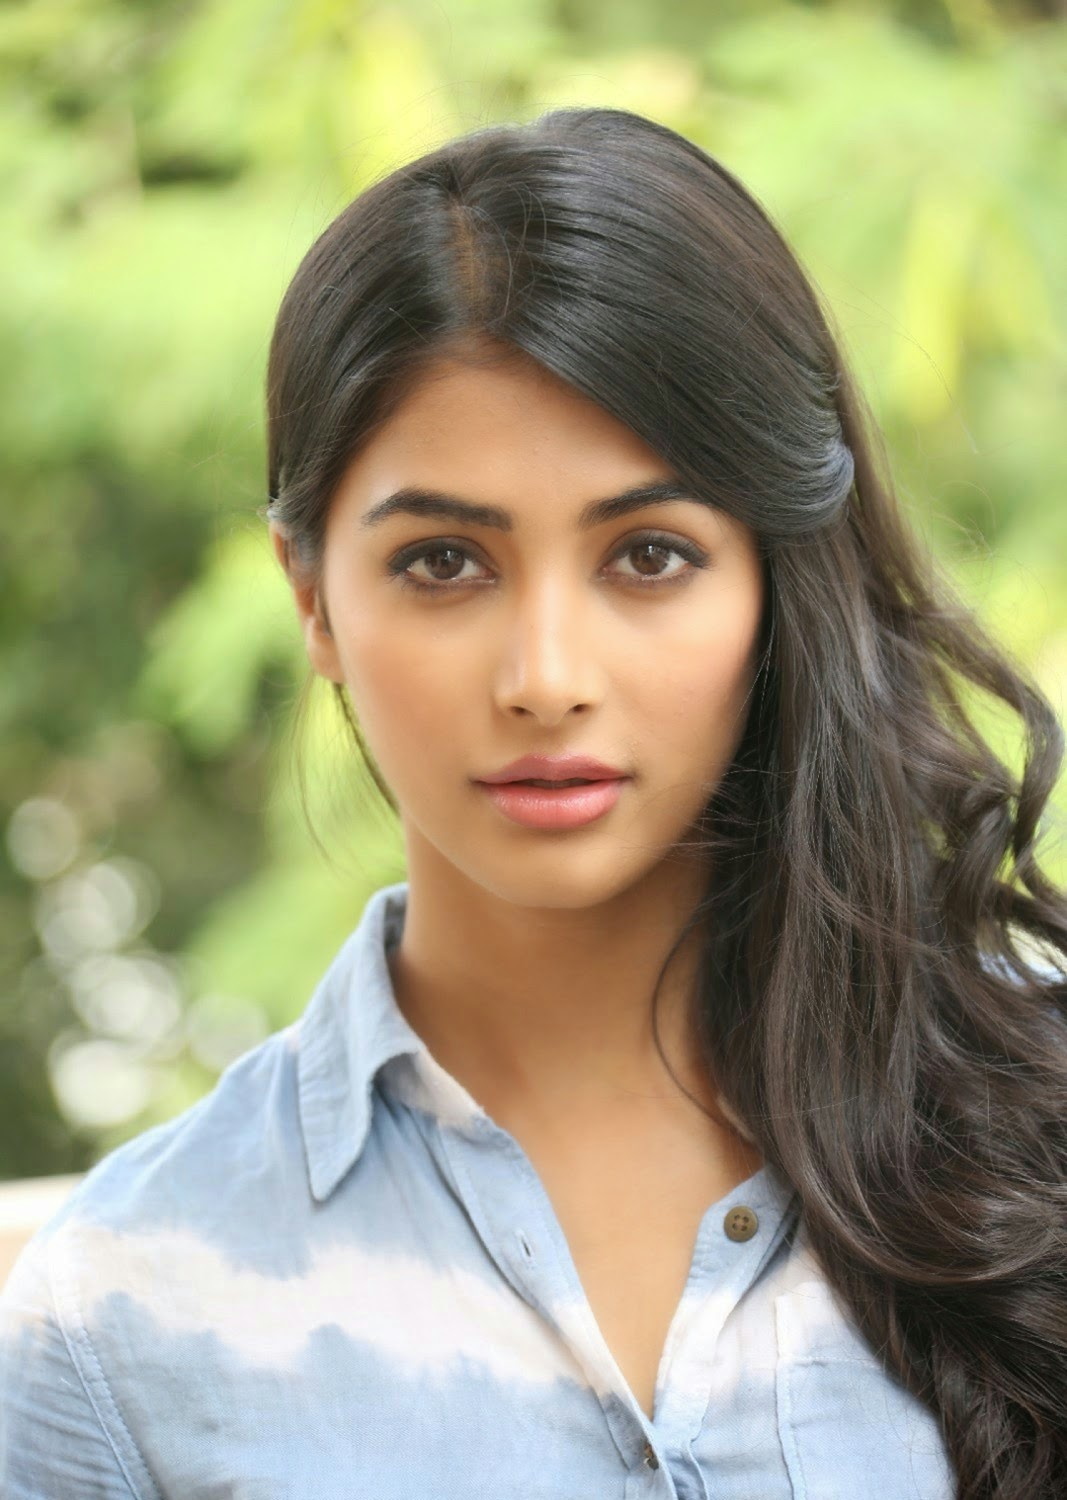 New Simple Girl Wallpaper Pooja Hegde Latest Photo Gallery In Blue Jeans Hq Pics N